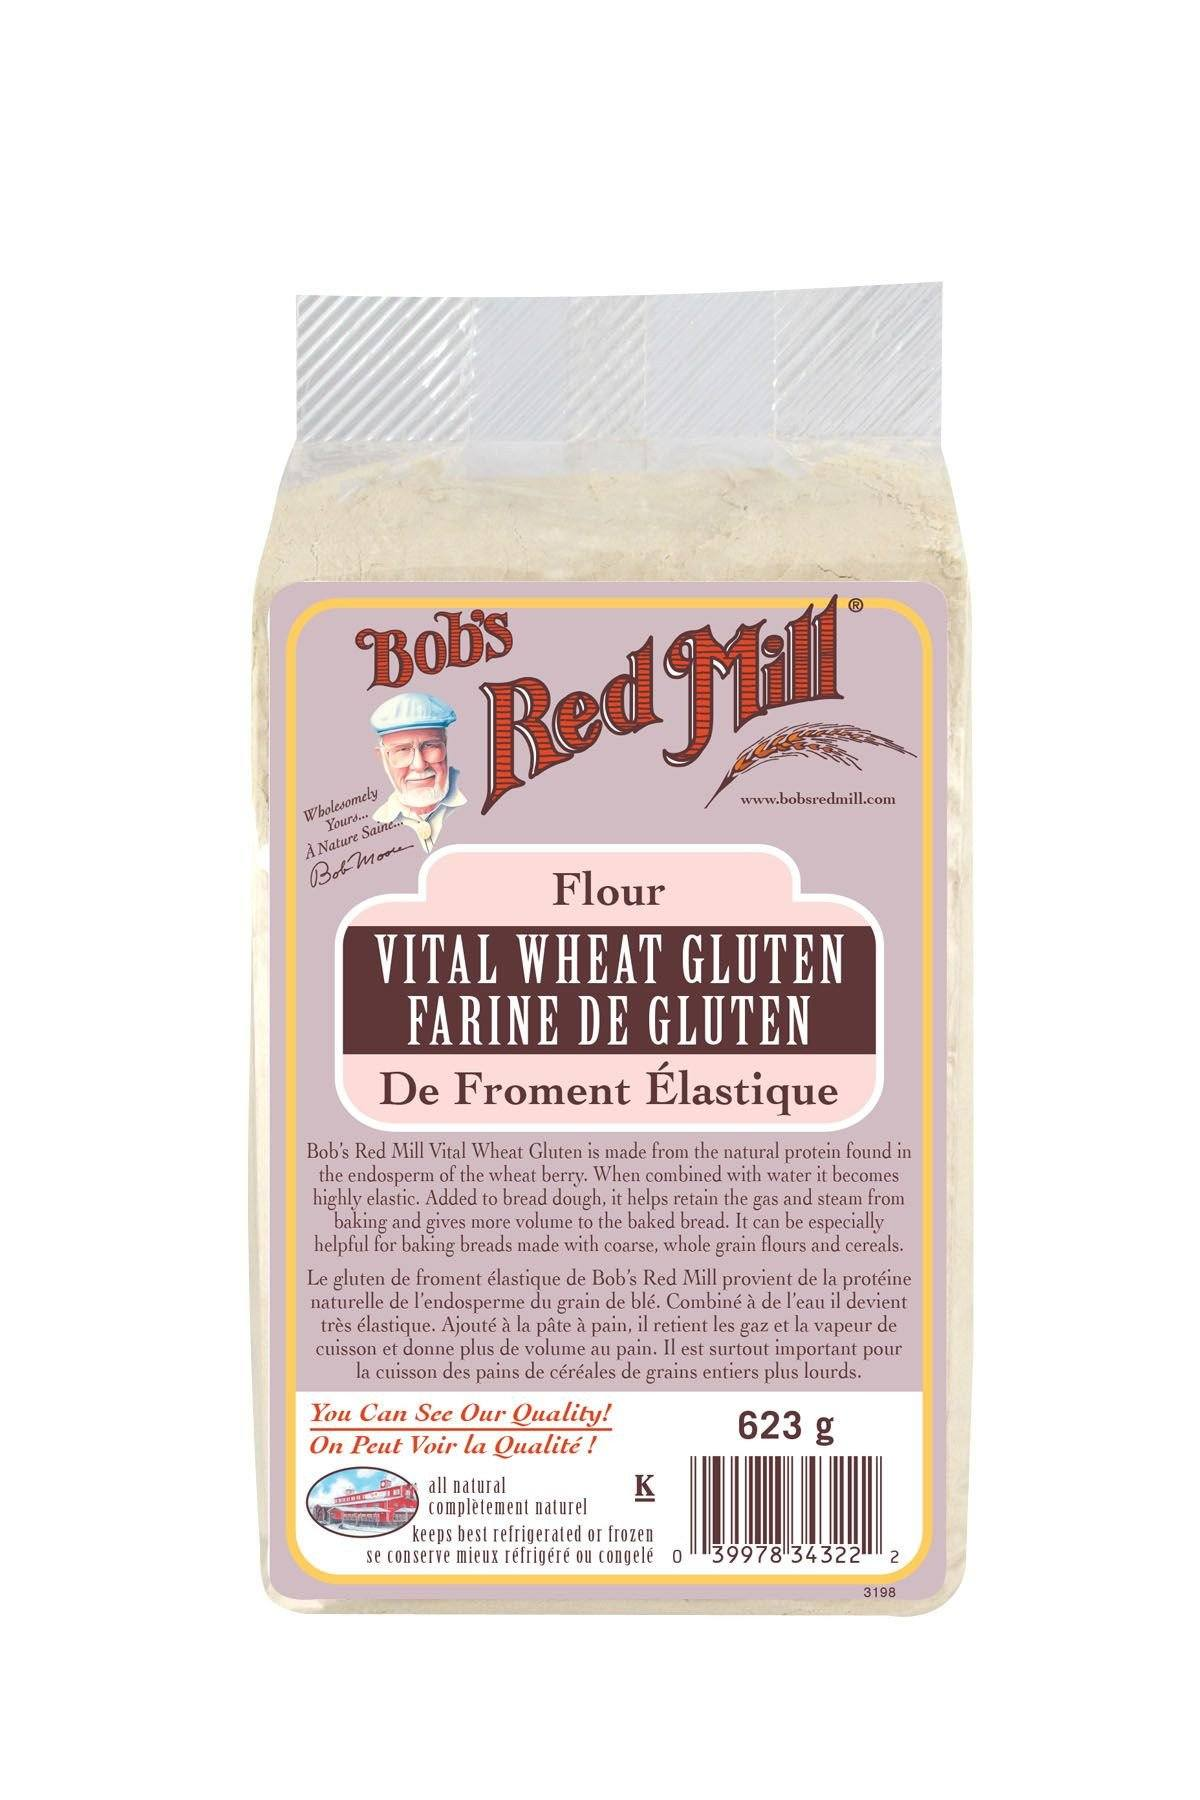 Food & Drink - Bob's Red Mill - Vital Wheat Gluten, 623g